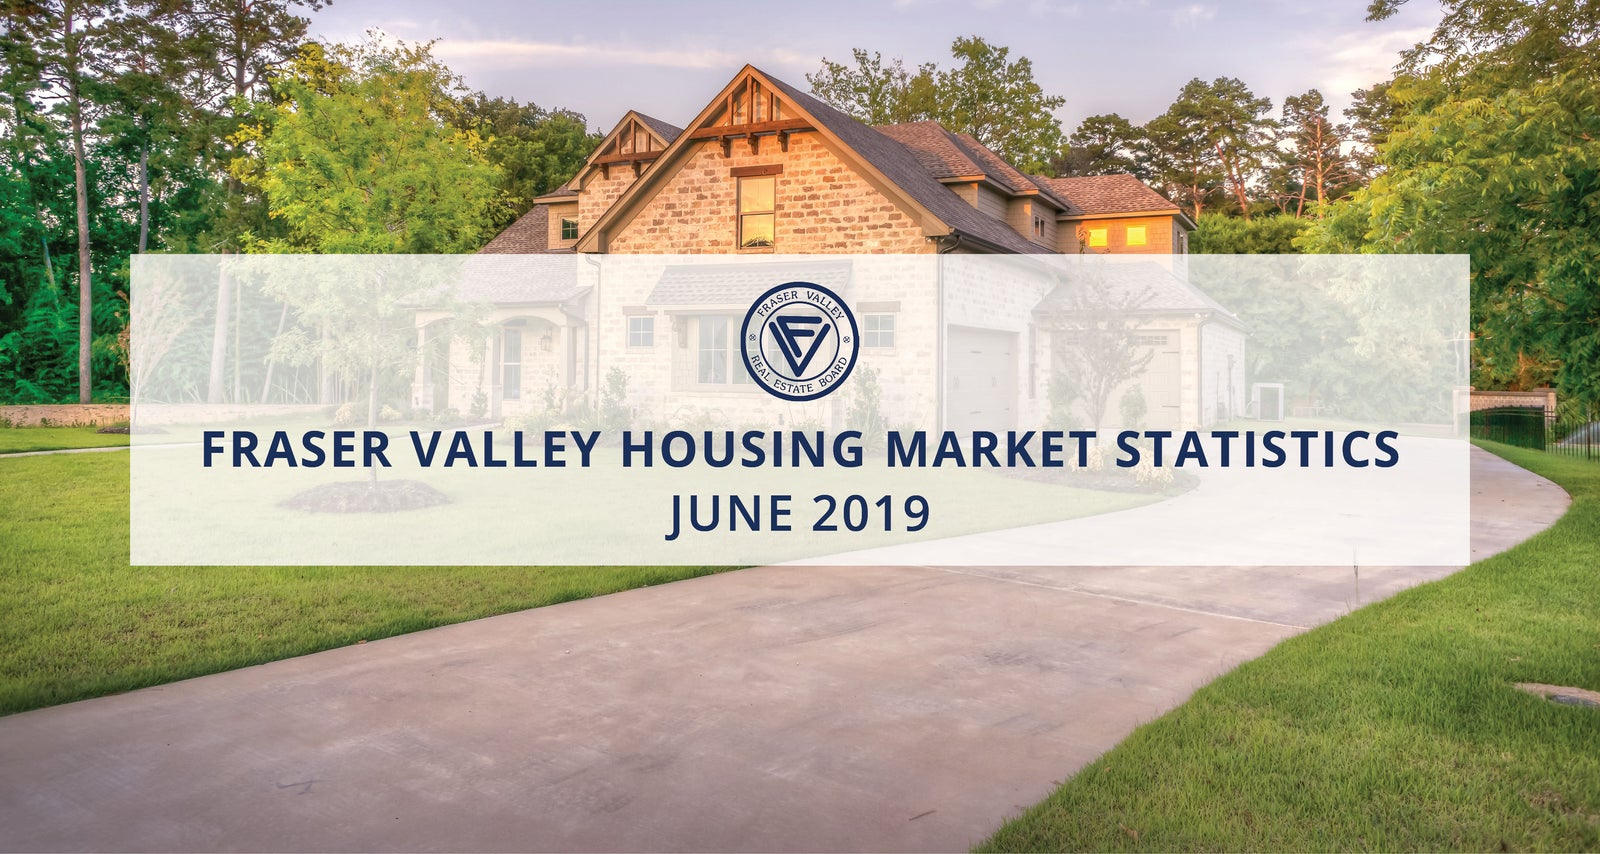 Fraser Valley Housing Statistics for June 2019